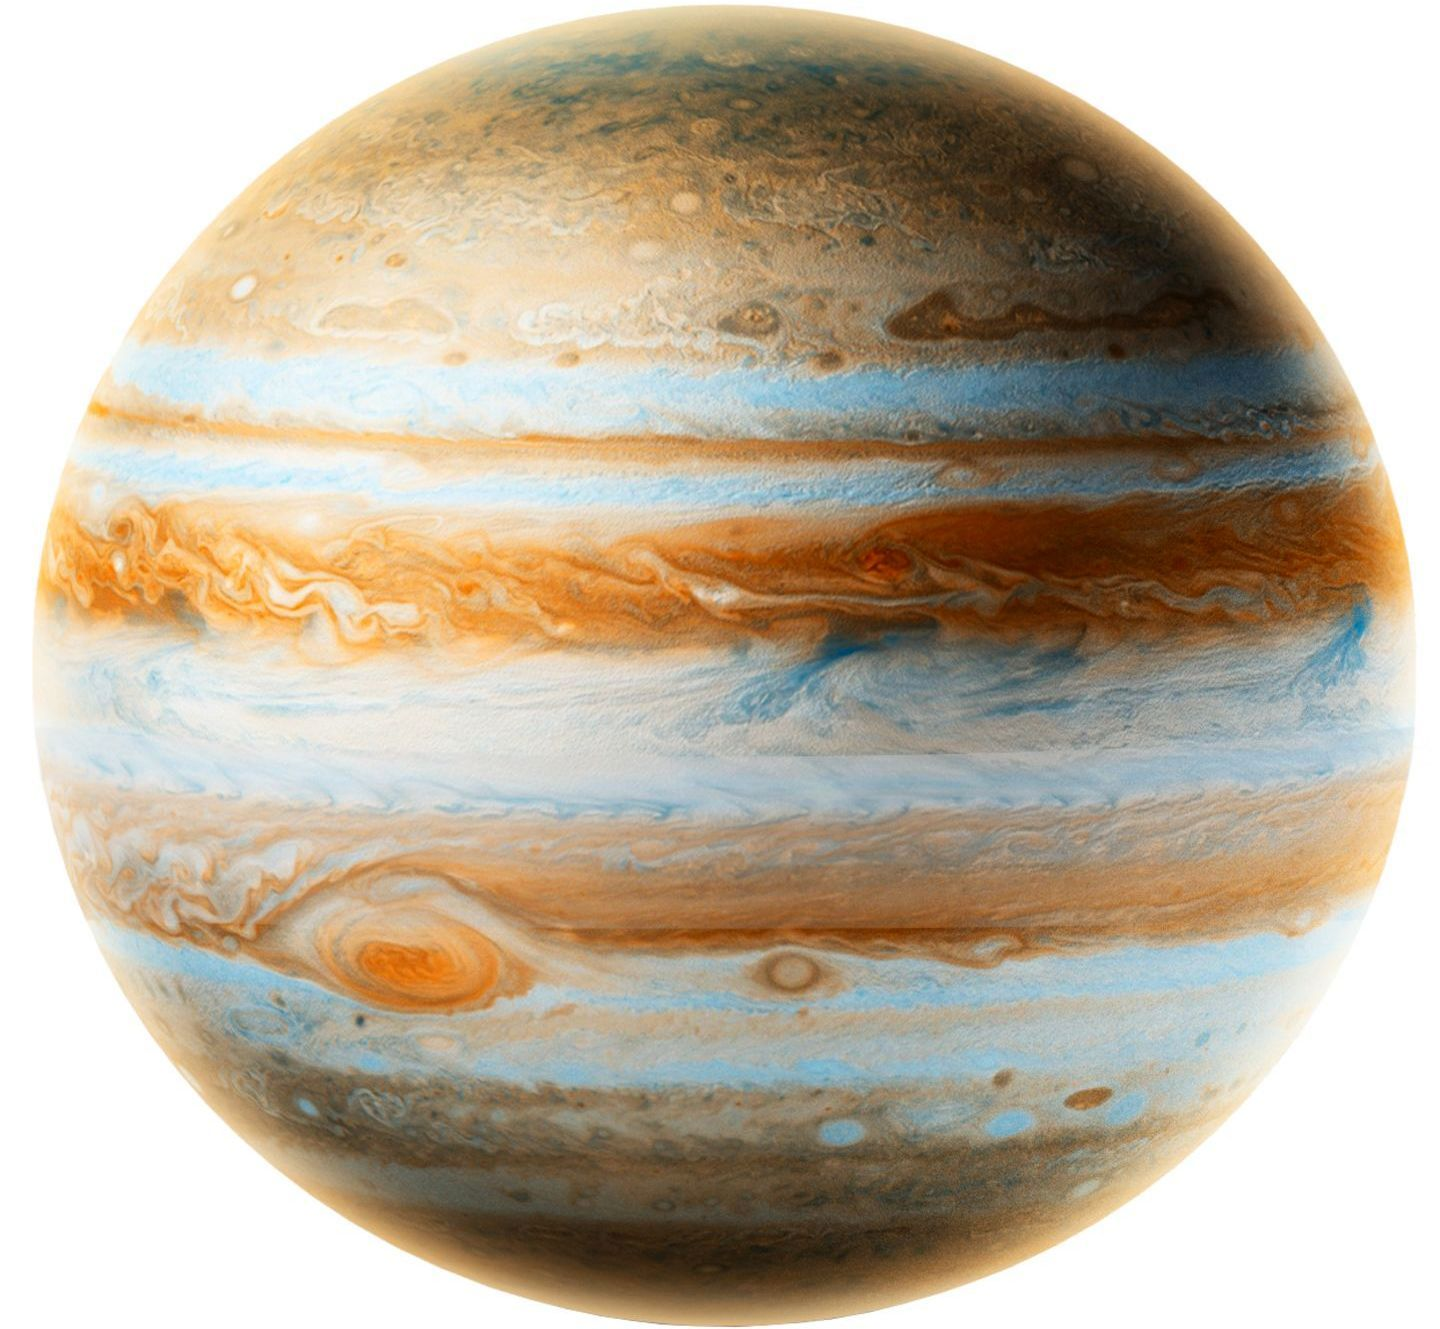 jupiter facts : Largest planet in solar system